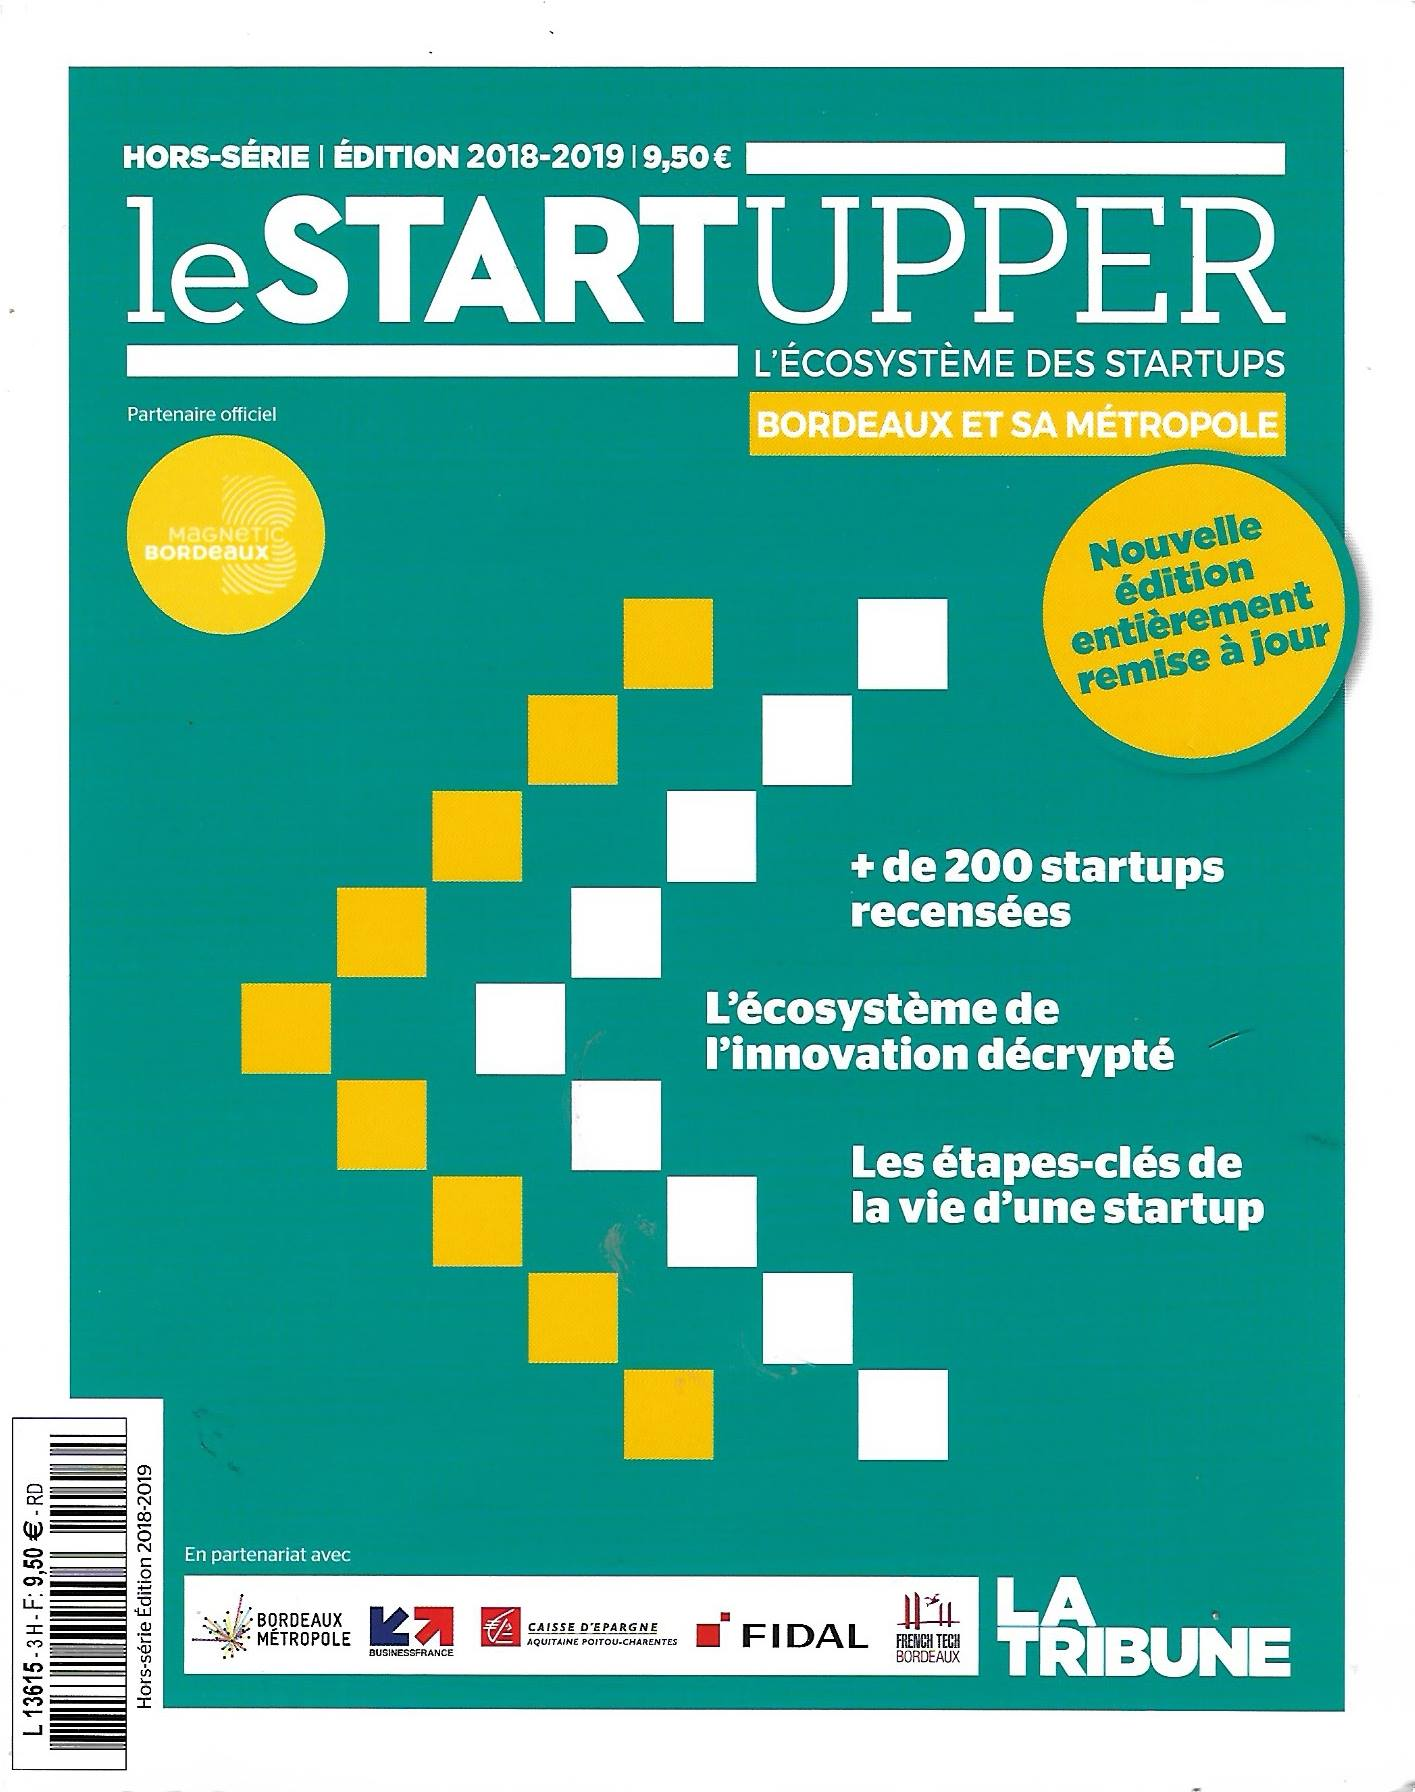 La Tribune start-up scealprod.fr Atelier d'écriture en ligne